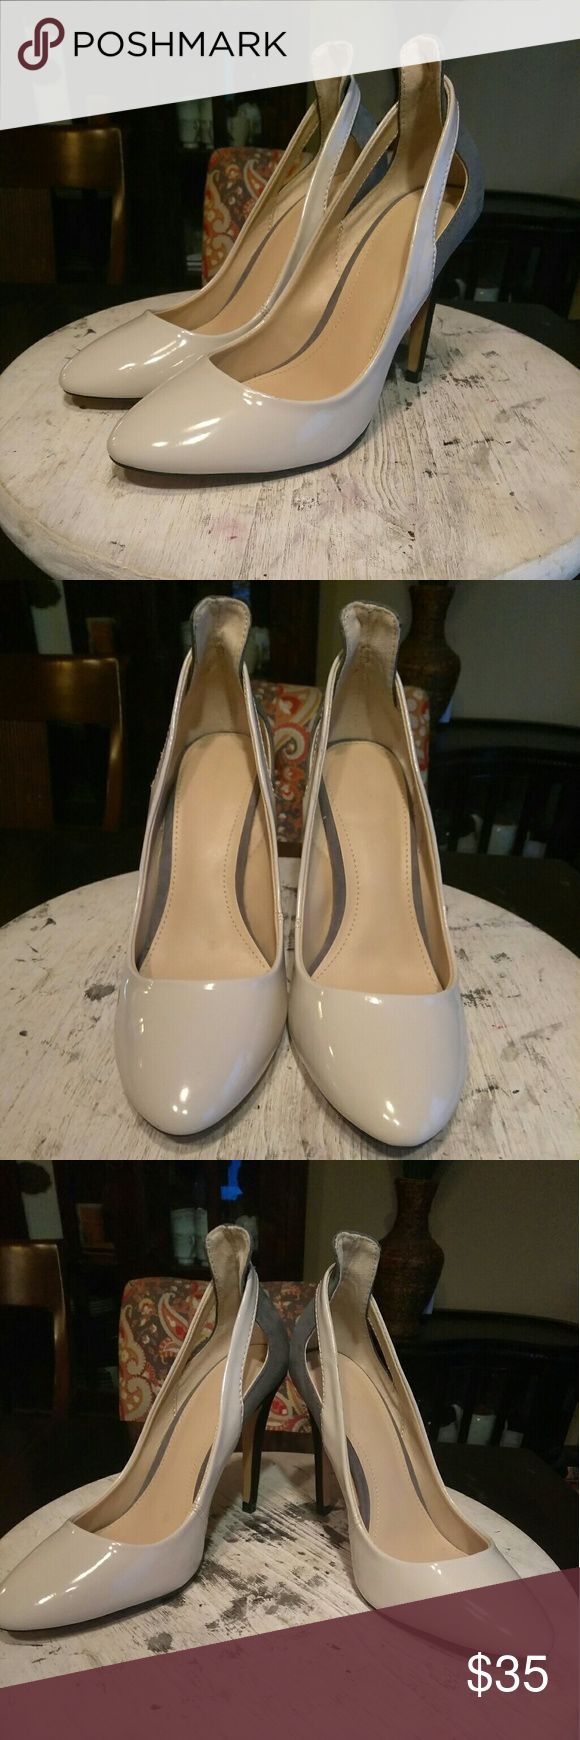 JUST IN!!! ZARA-Patent Pump WERRKKKKK!!! Perfect pump for the office followed by a night out with the girls!!! Cream patent upper, w/grey back & 4in black heel!!! Dress them up or down and always look FAB!!! Minimal wear (shown above not noticeable when wearing) great condition inside and out!!! Let's make some offers Ladies!!! Zara Shoes Heels